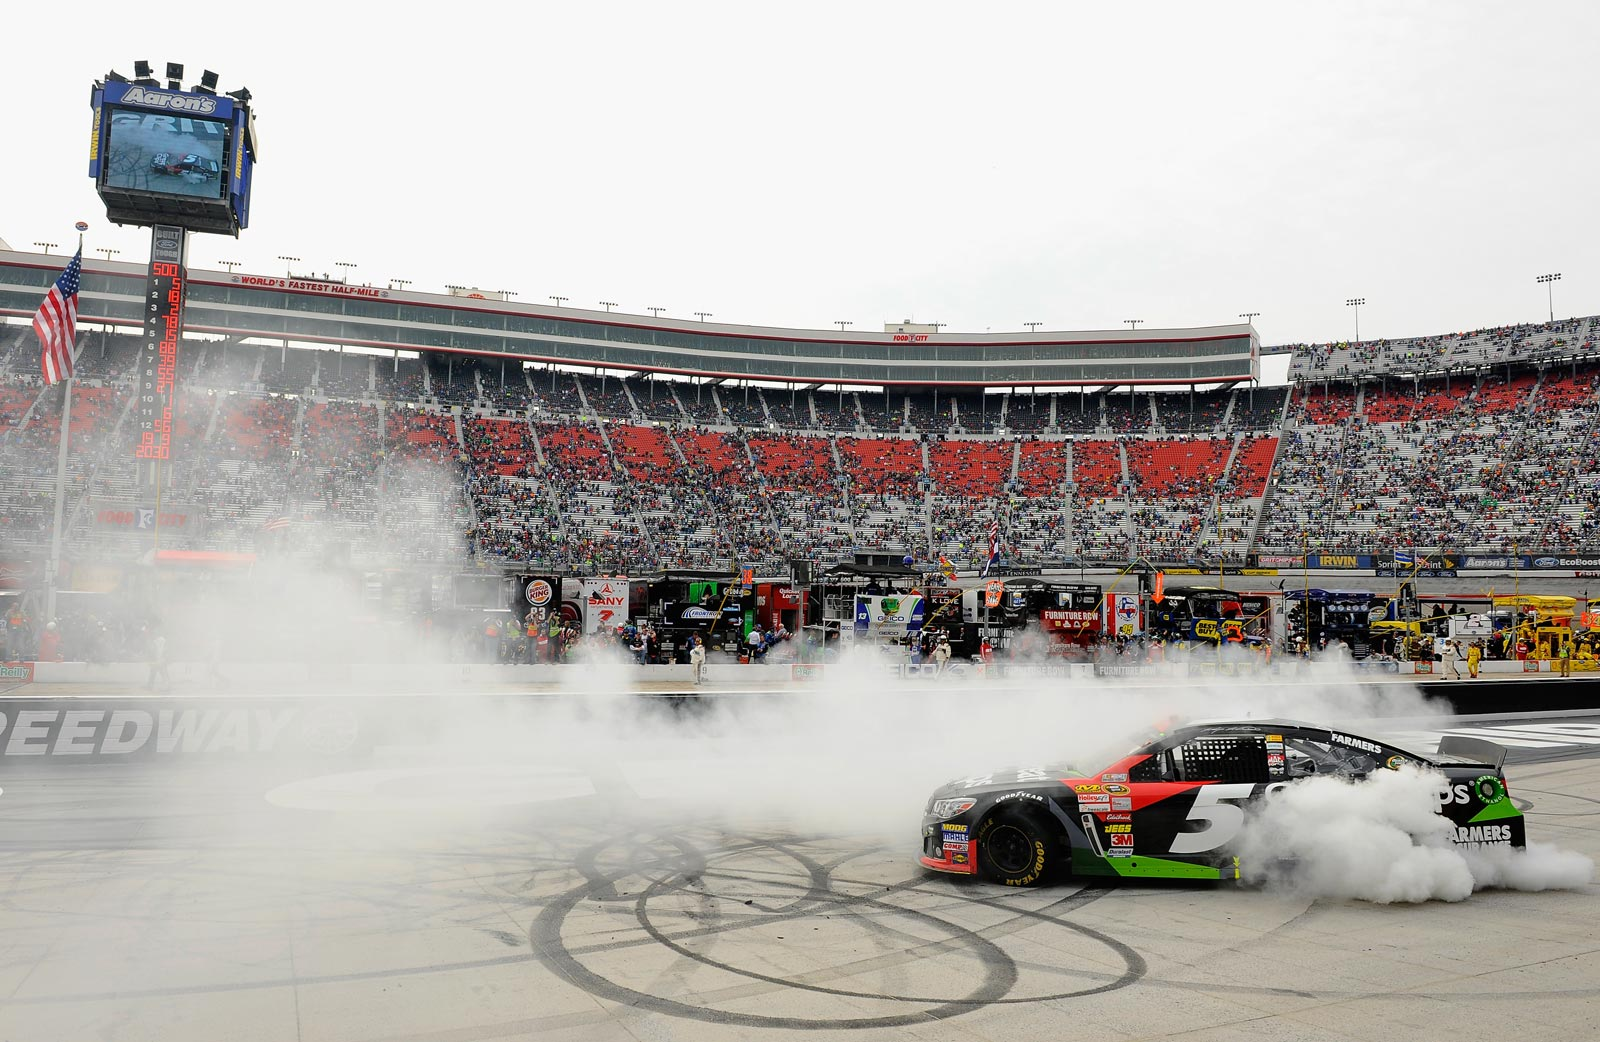 2013-Bristol-March-Kasey-Kahne-Burnout